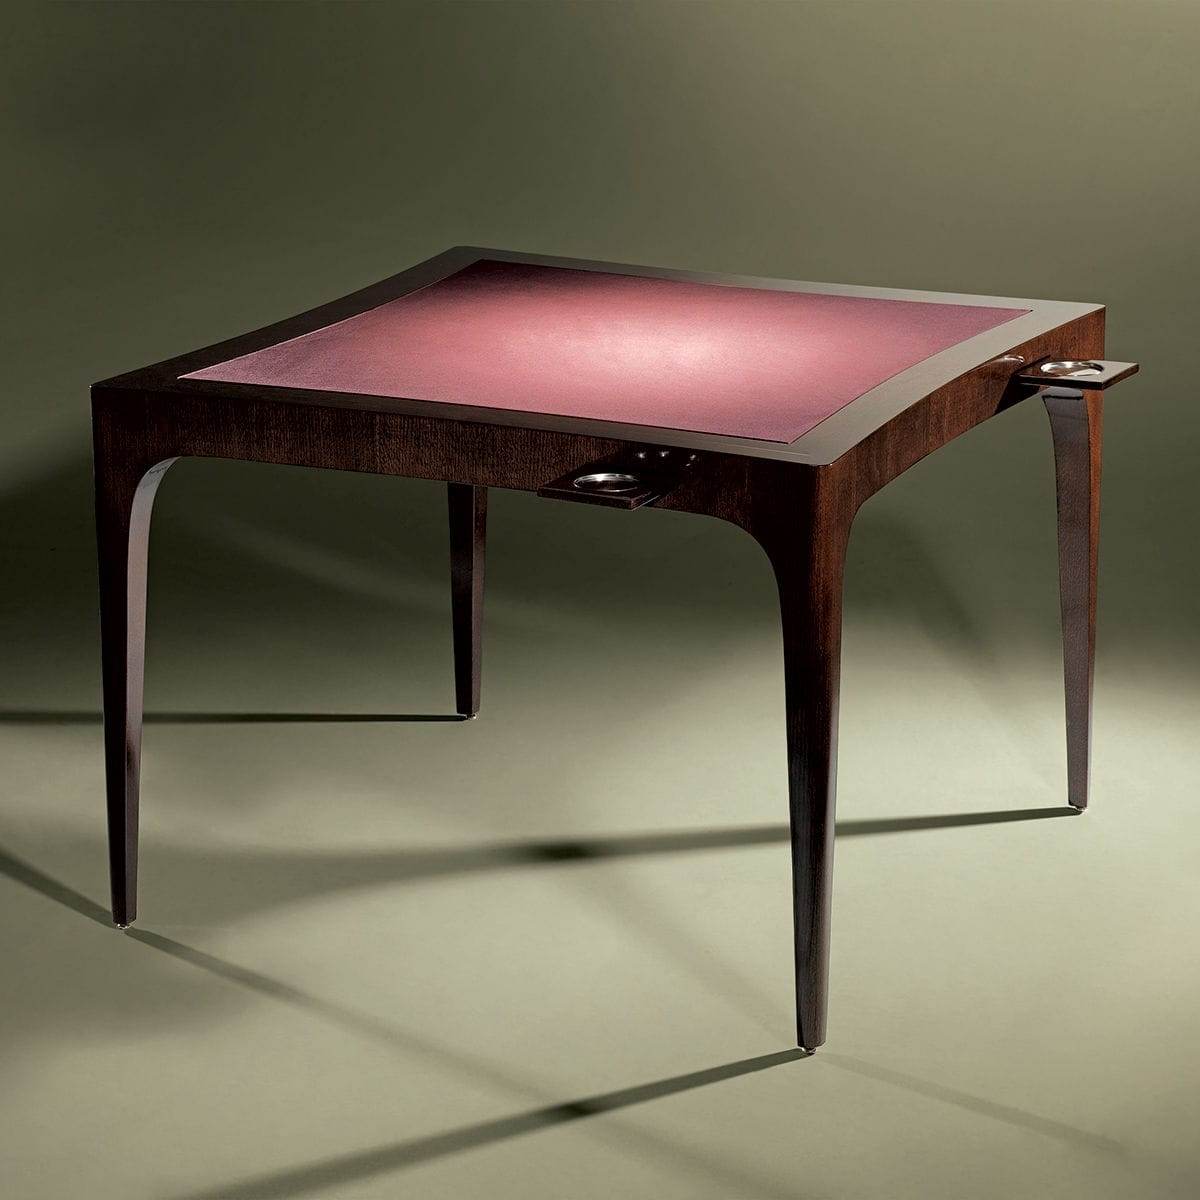 Contemporary Dining Table / Wooden / Rectangular – Curve – Luisa Throughout Contemporary Curves Coffee Tables (View 9 of 30)